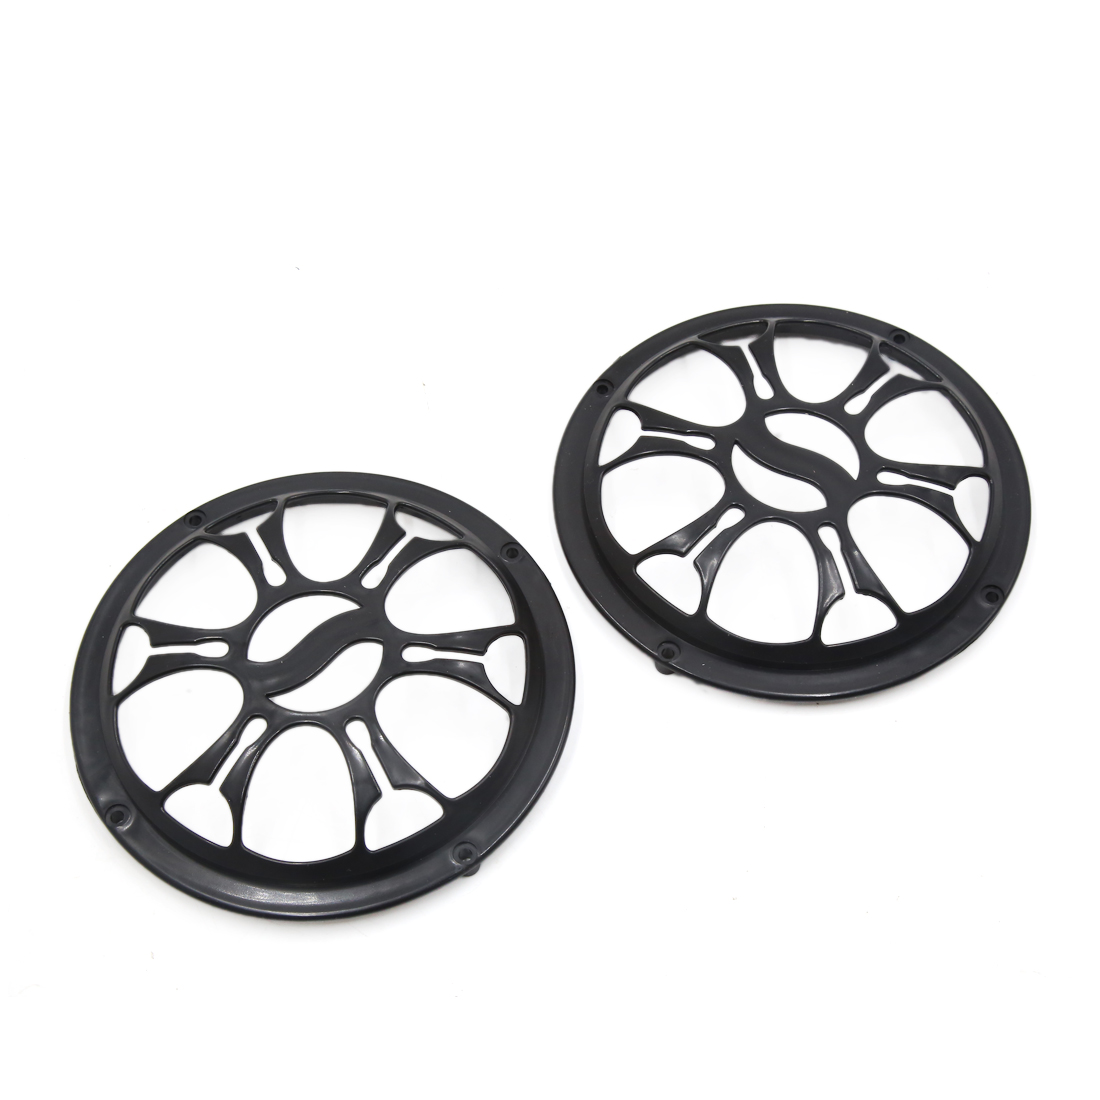 "2 Pcs 6"" Dia Black Plastic Audio Speaker Subwoofer Dust Cover Protector for Auto Car"